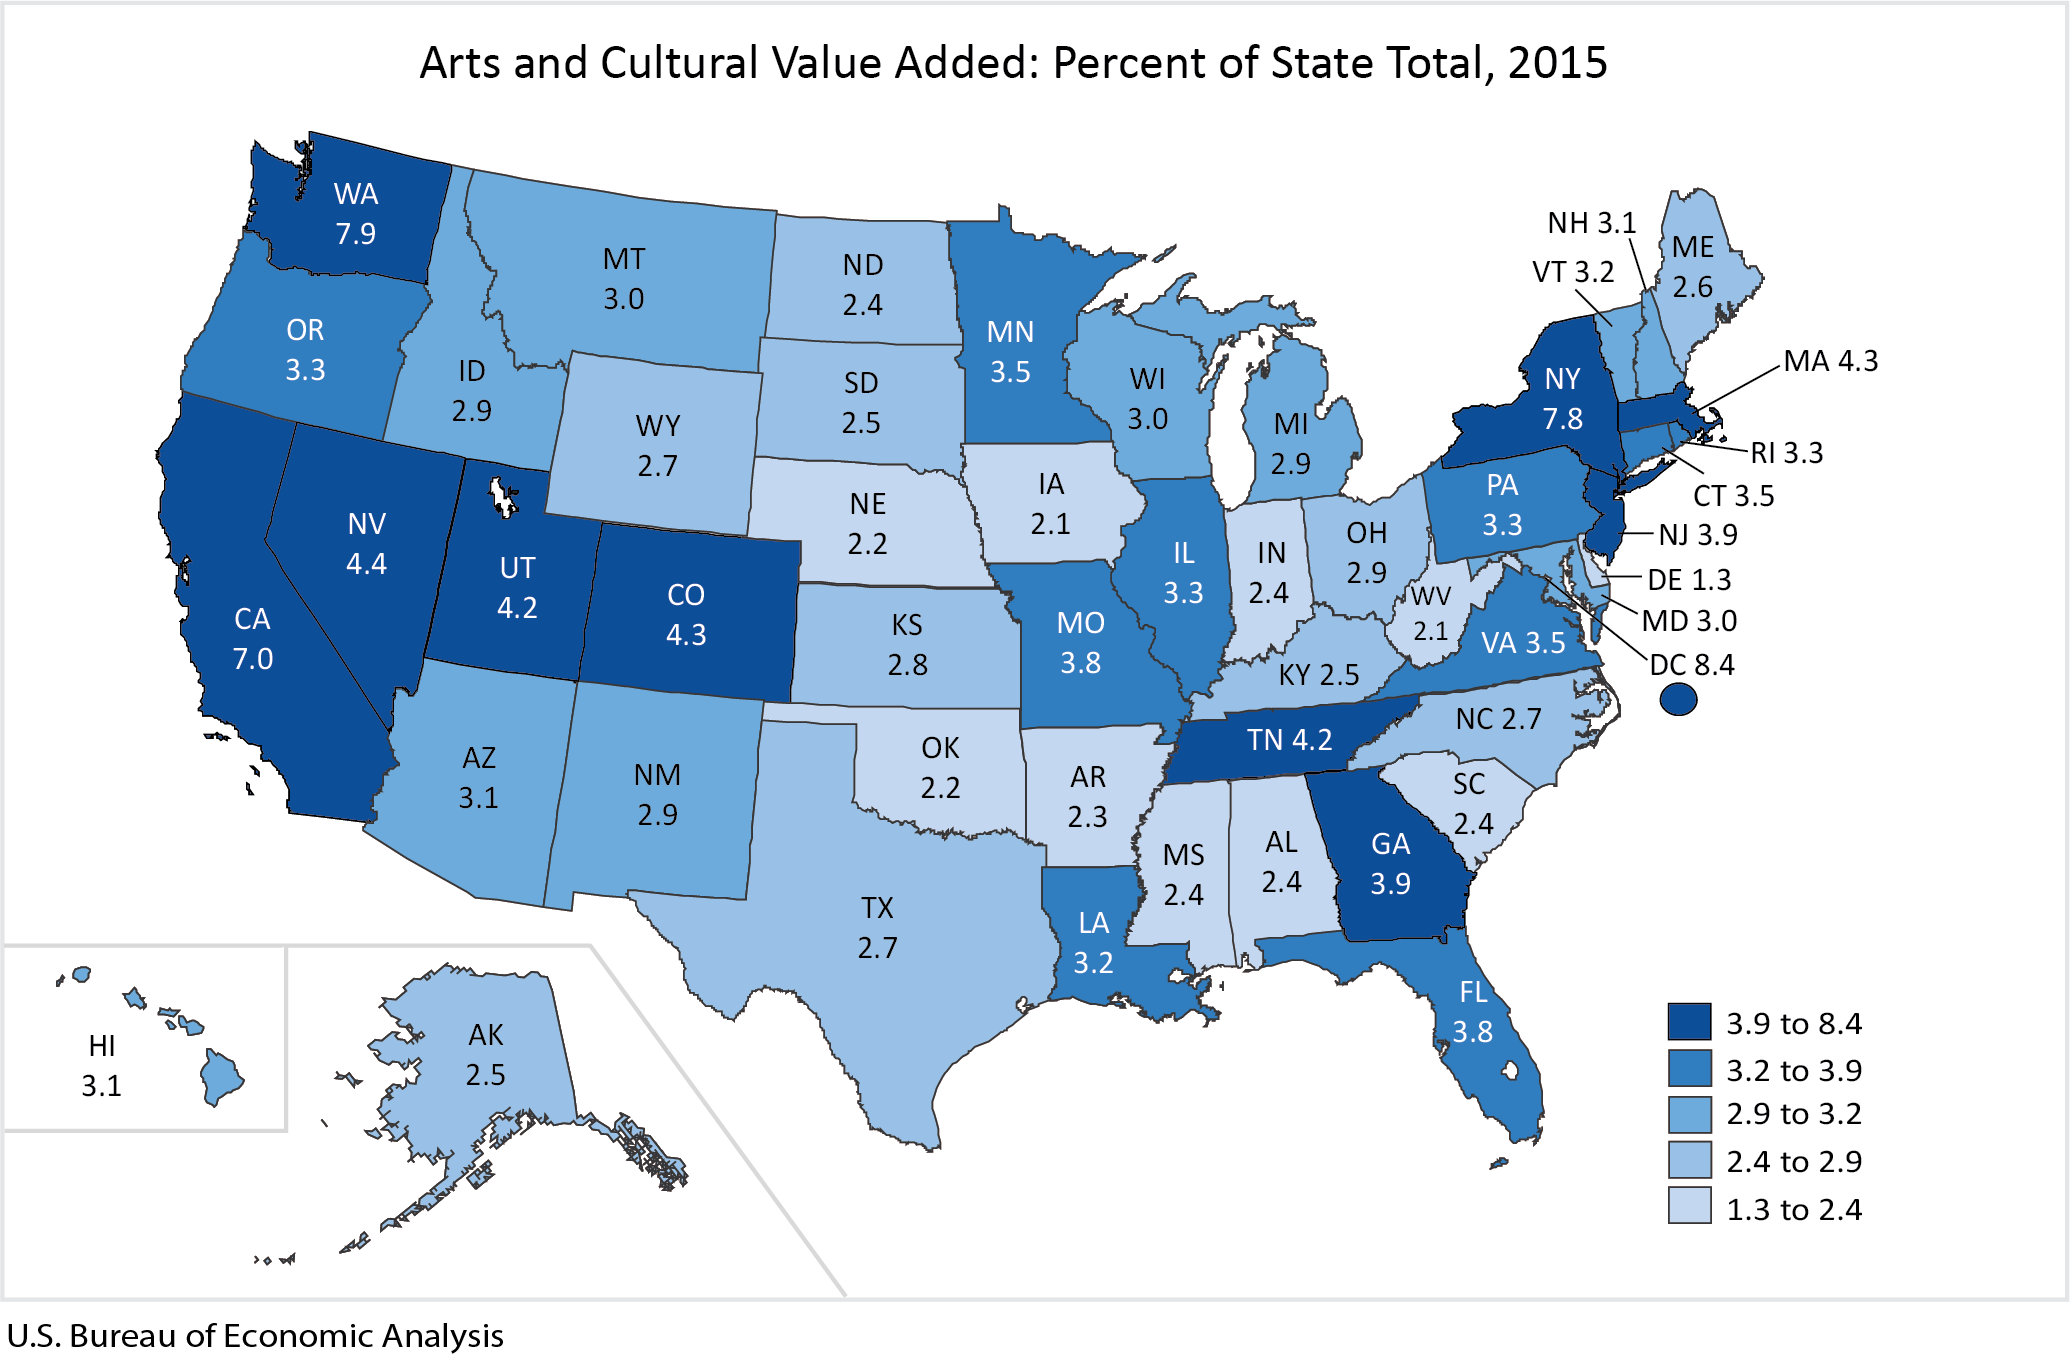 Arts and Cultural Value Added Map: Percent of State Total 2015